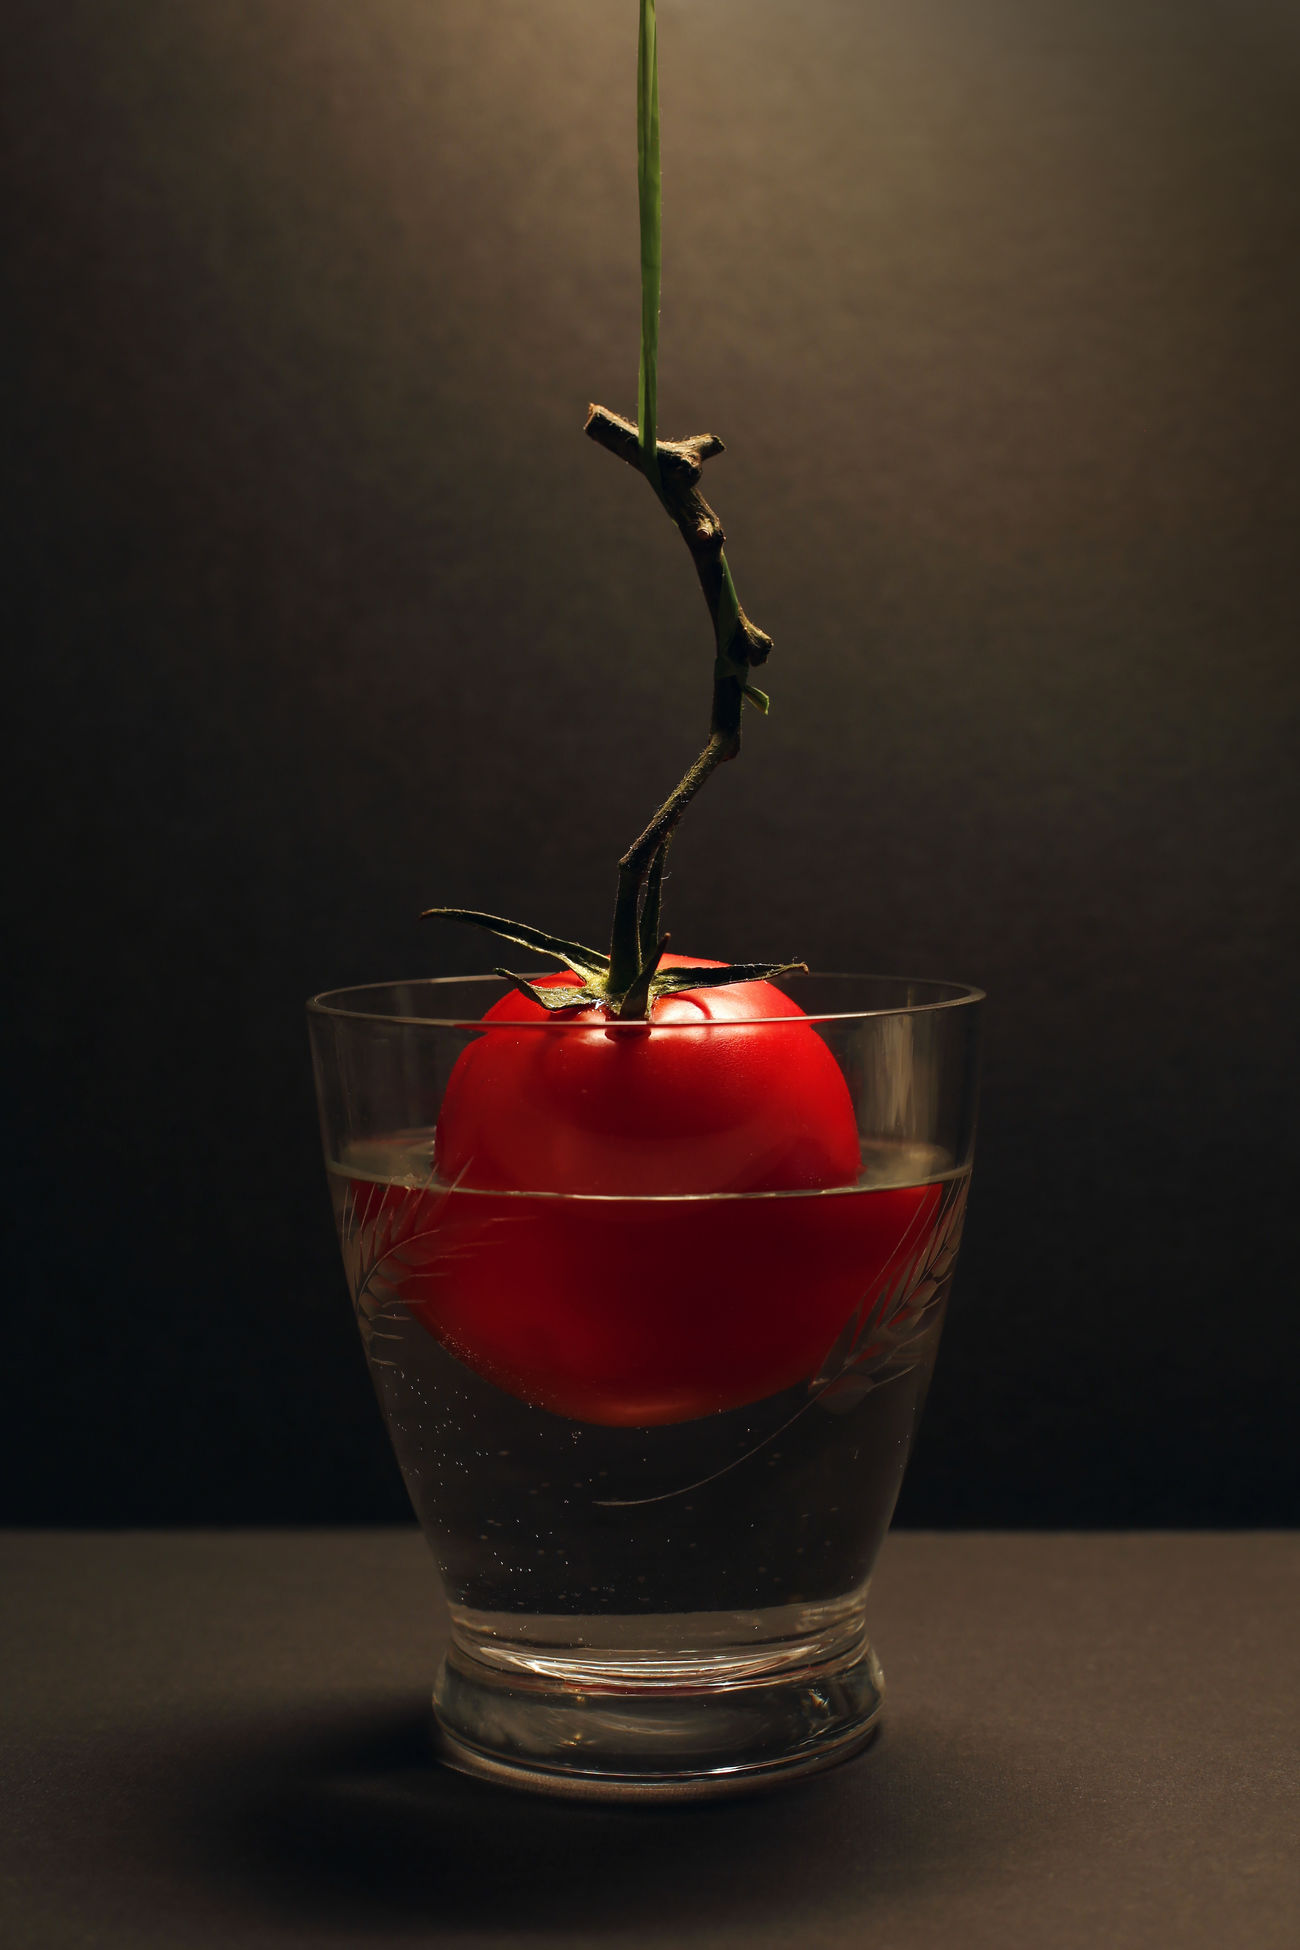 Tomato Tomate Abstract Food Porn Food Foodphotography AMPt_community Shootermag Red